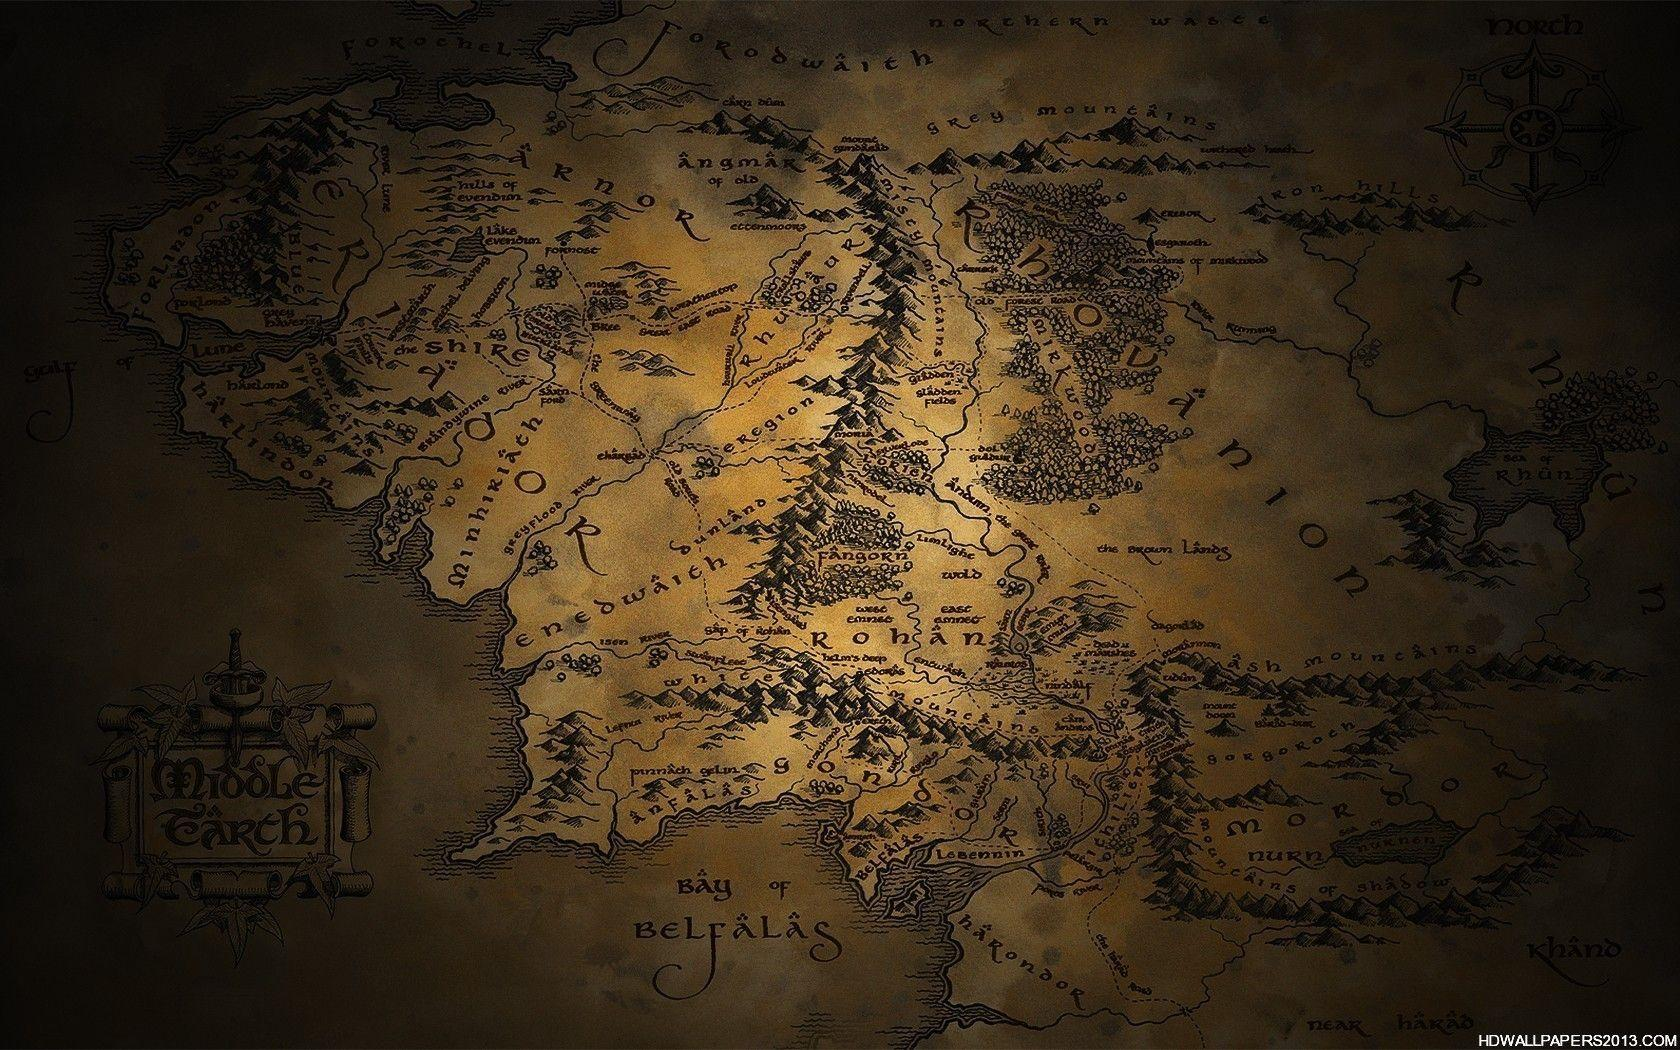 Middle Earth Wallpapers - Top Free Middle Earth Backgrounds ... on